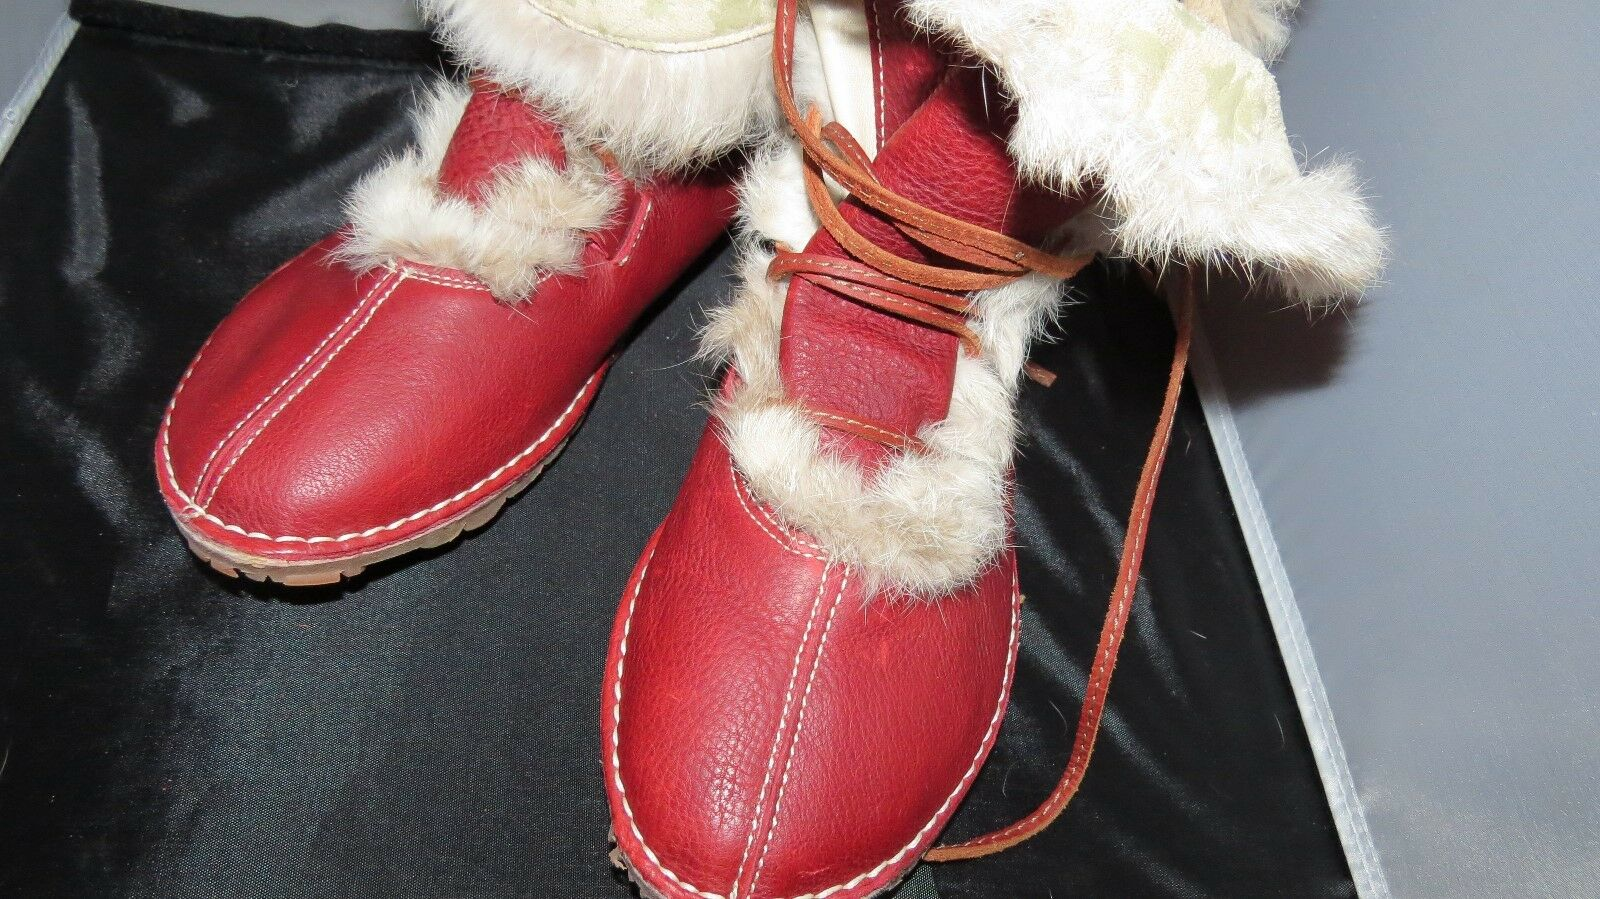 El Naturalista Organico Donna Pull Grain Leather W/ Fur Ankle Boots -Tibet Rosso